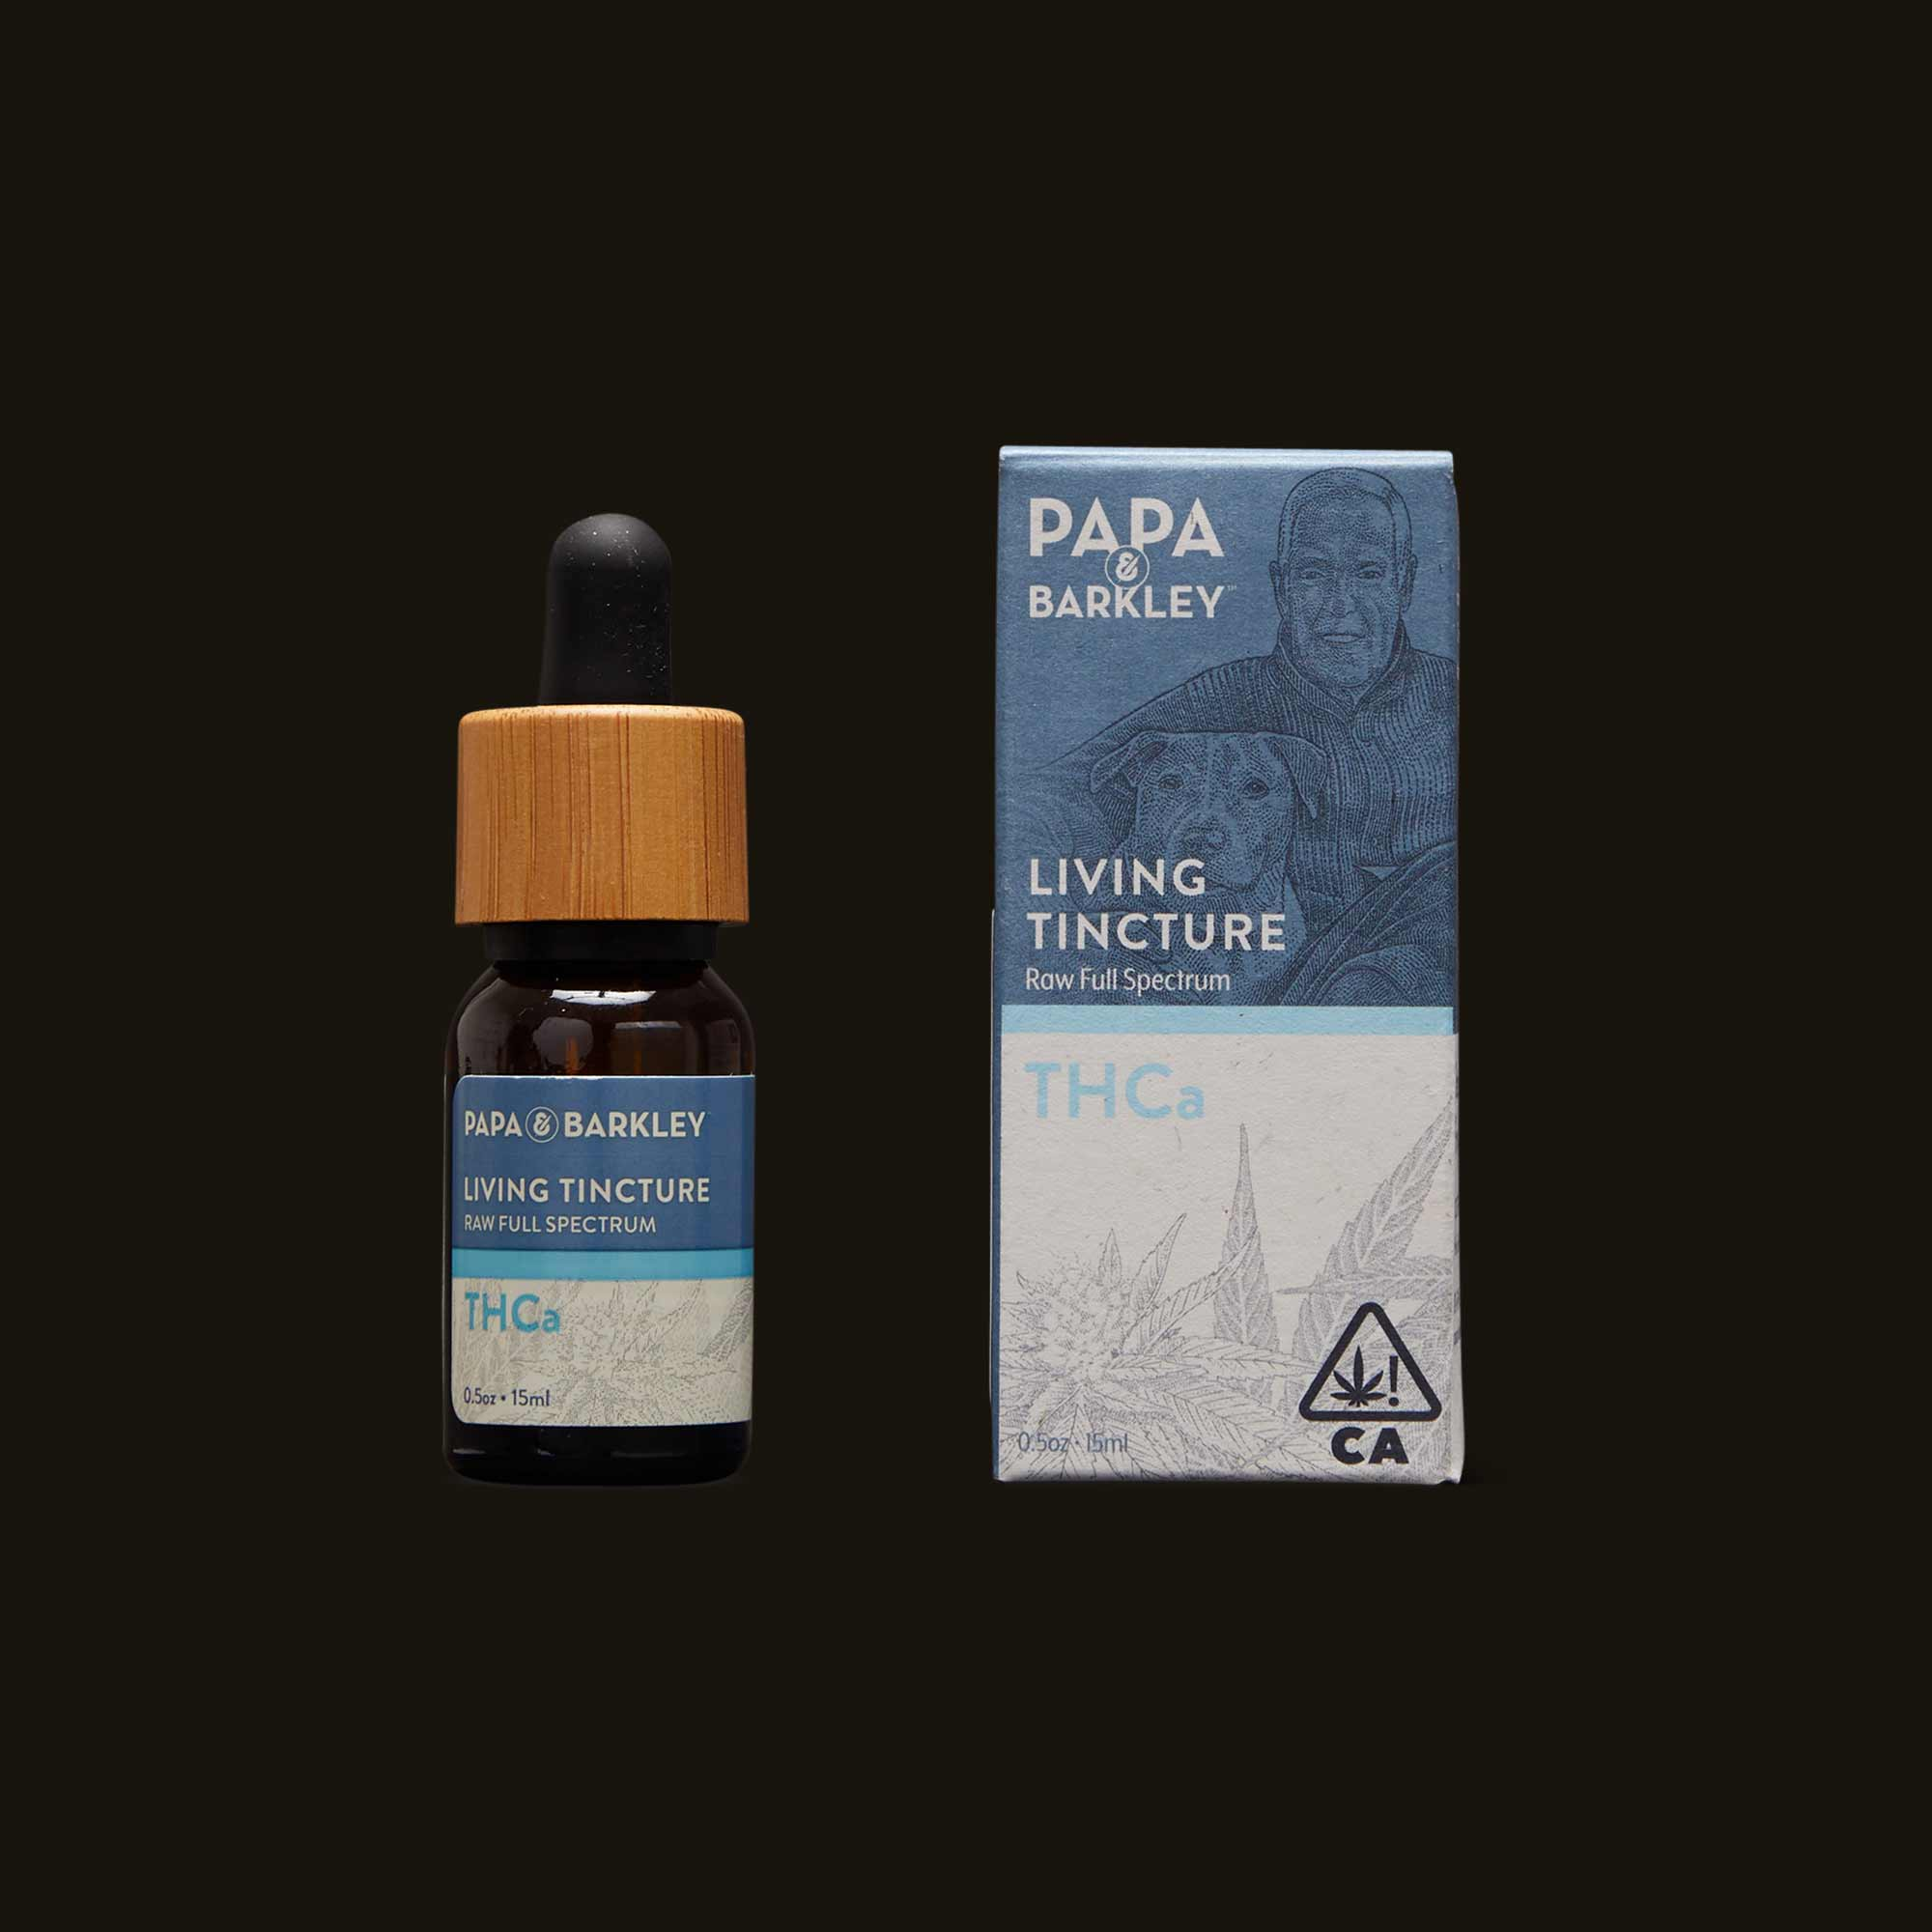 Living Tincture bottle and packaging